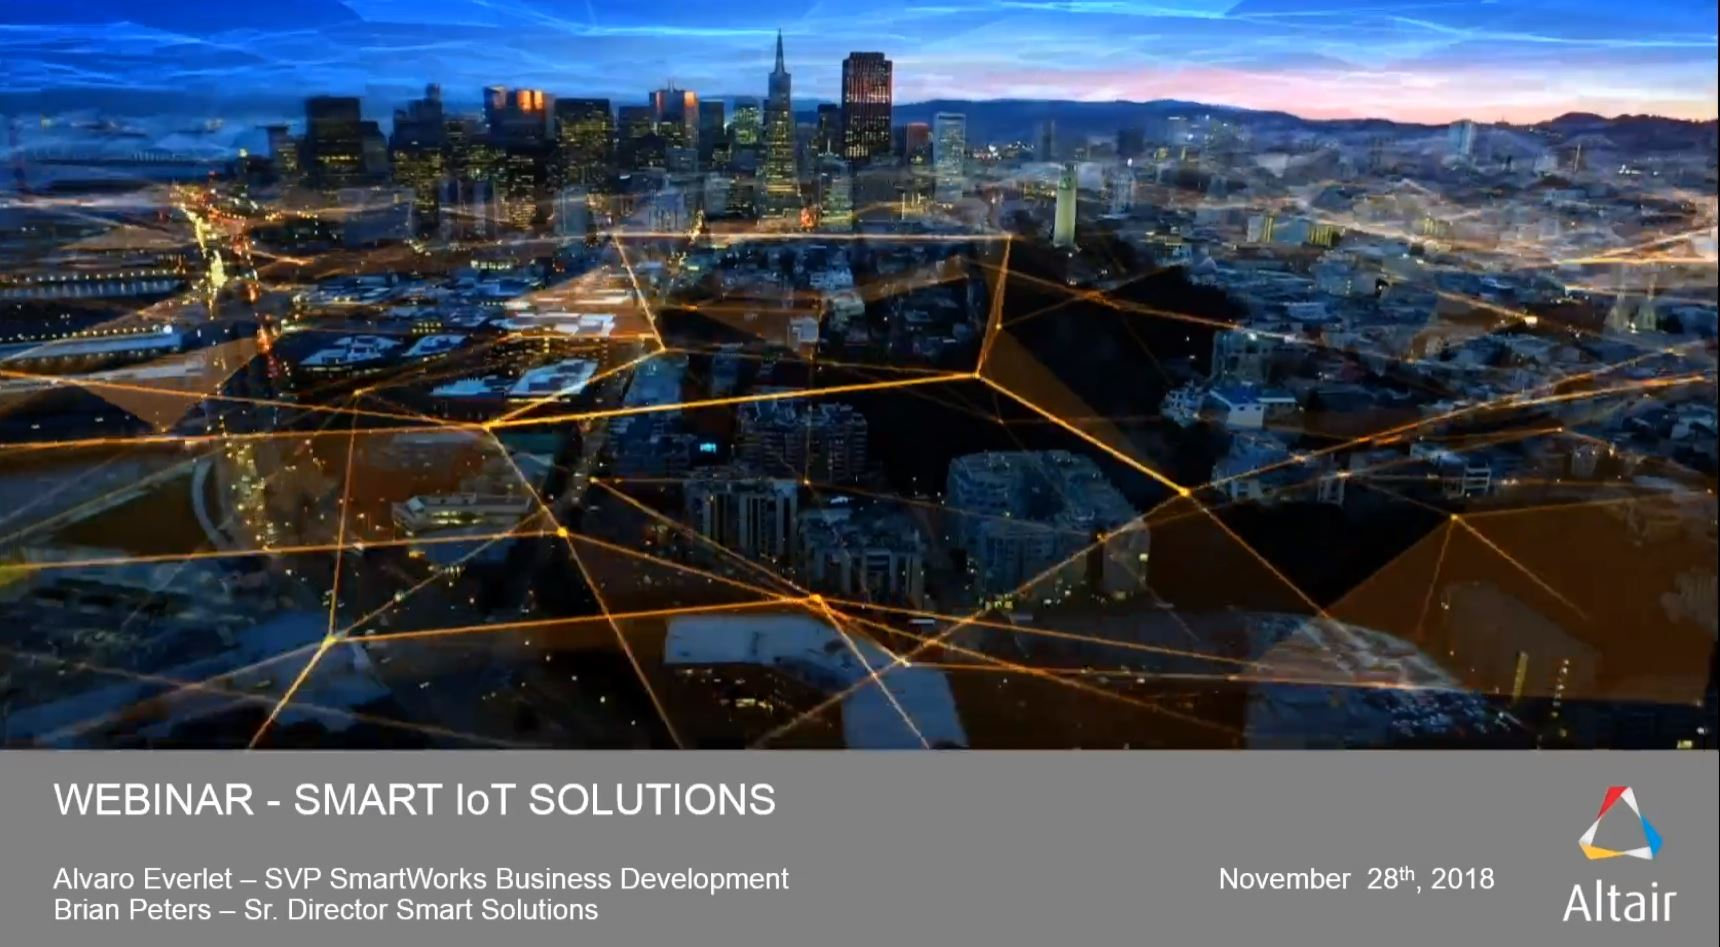 Smart IoT Solutions Presentation